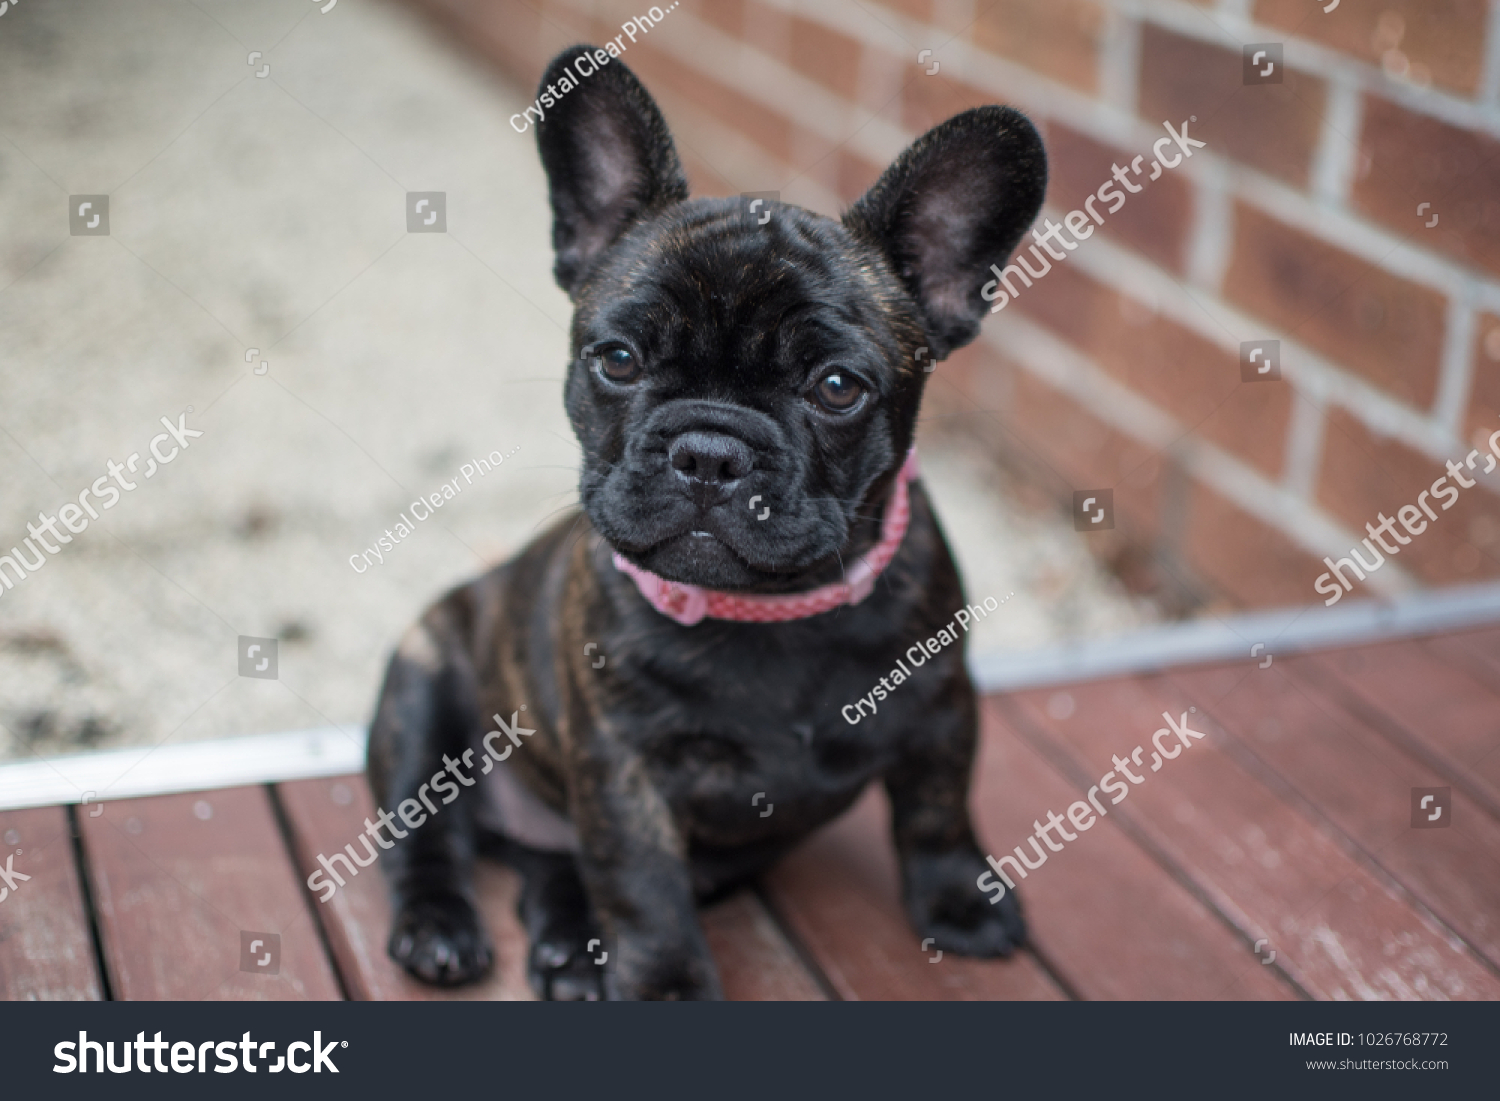 Brindle French Bulldog Puppy Sitting On Stock Photo Edit Now 1026768772